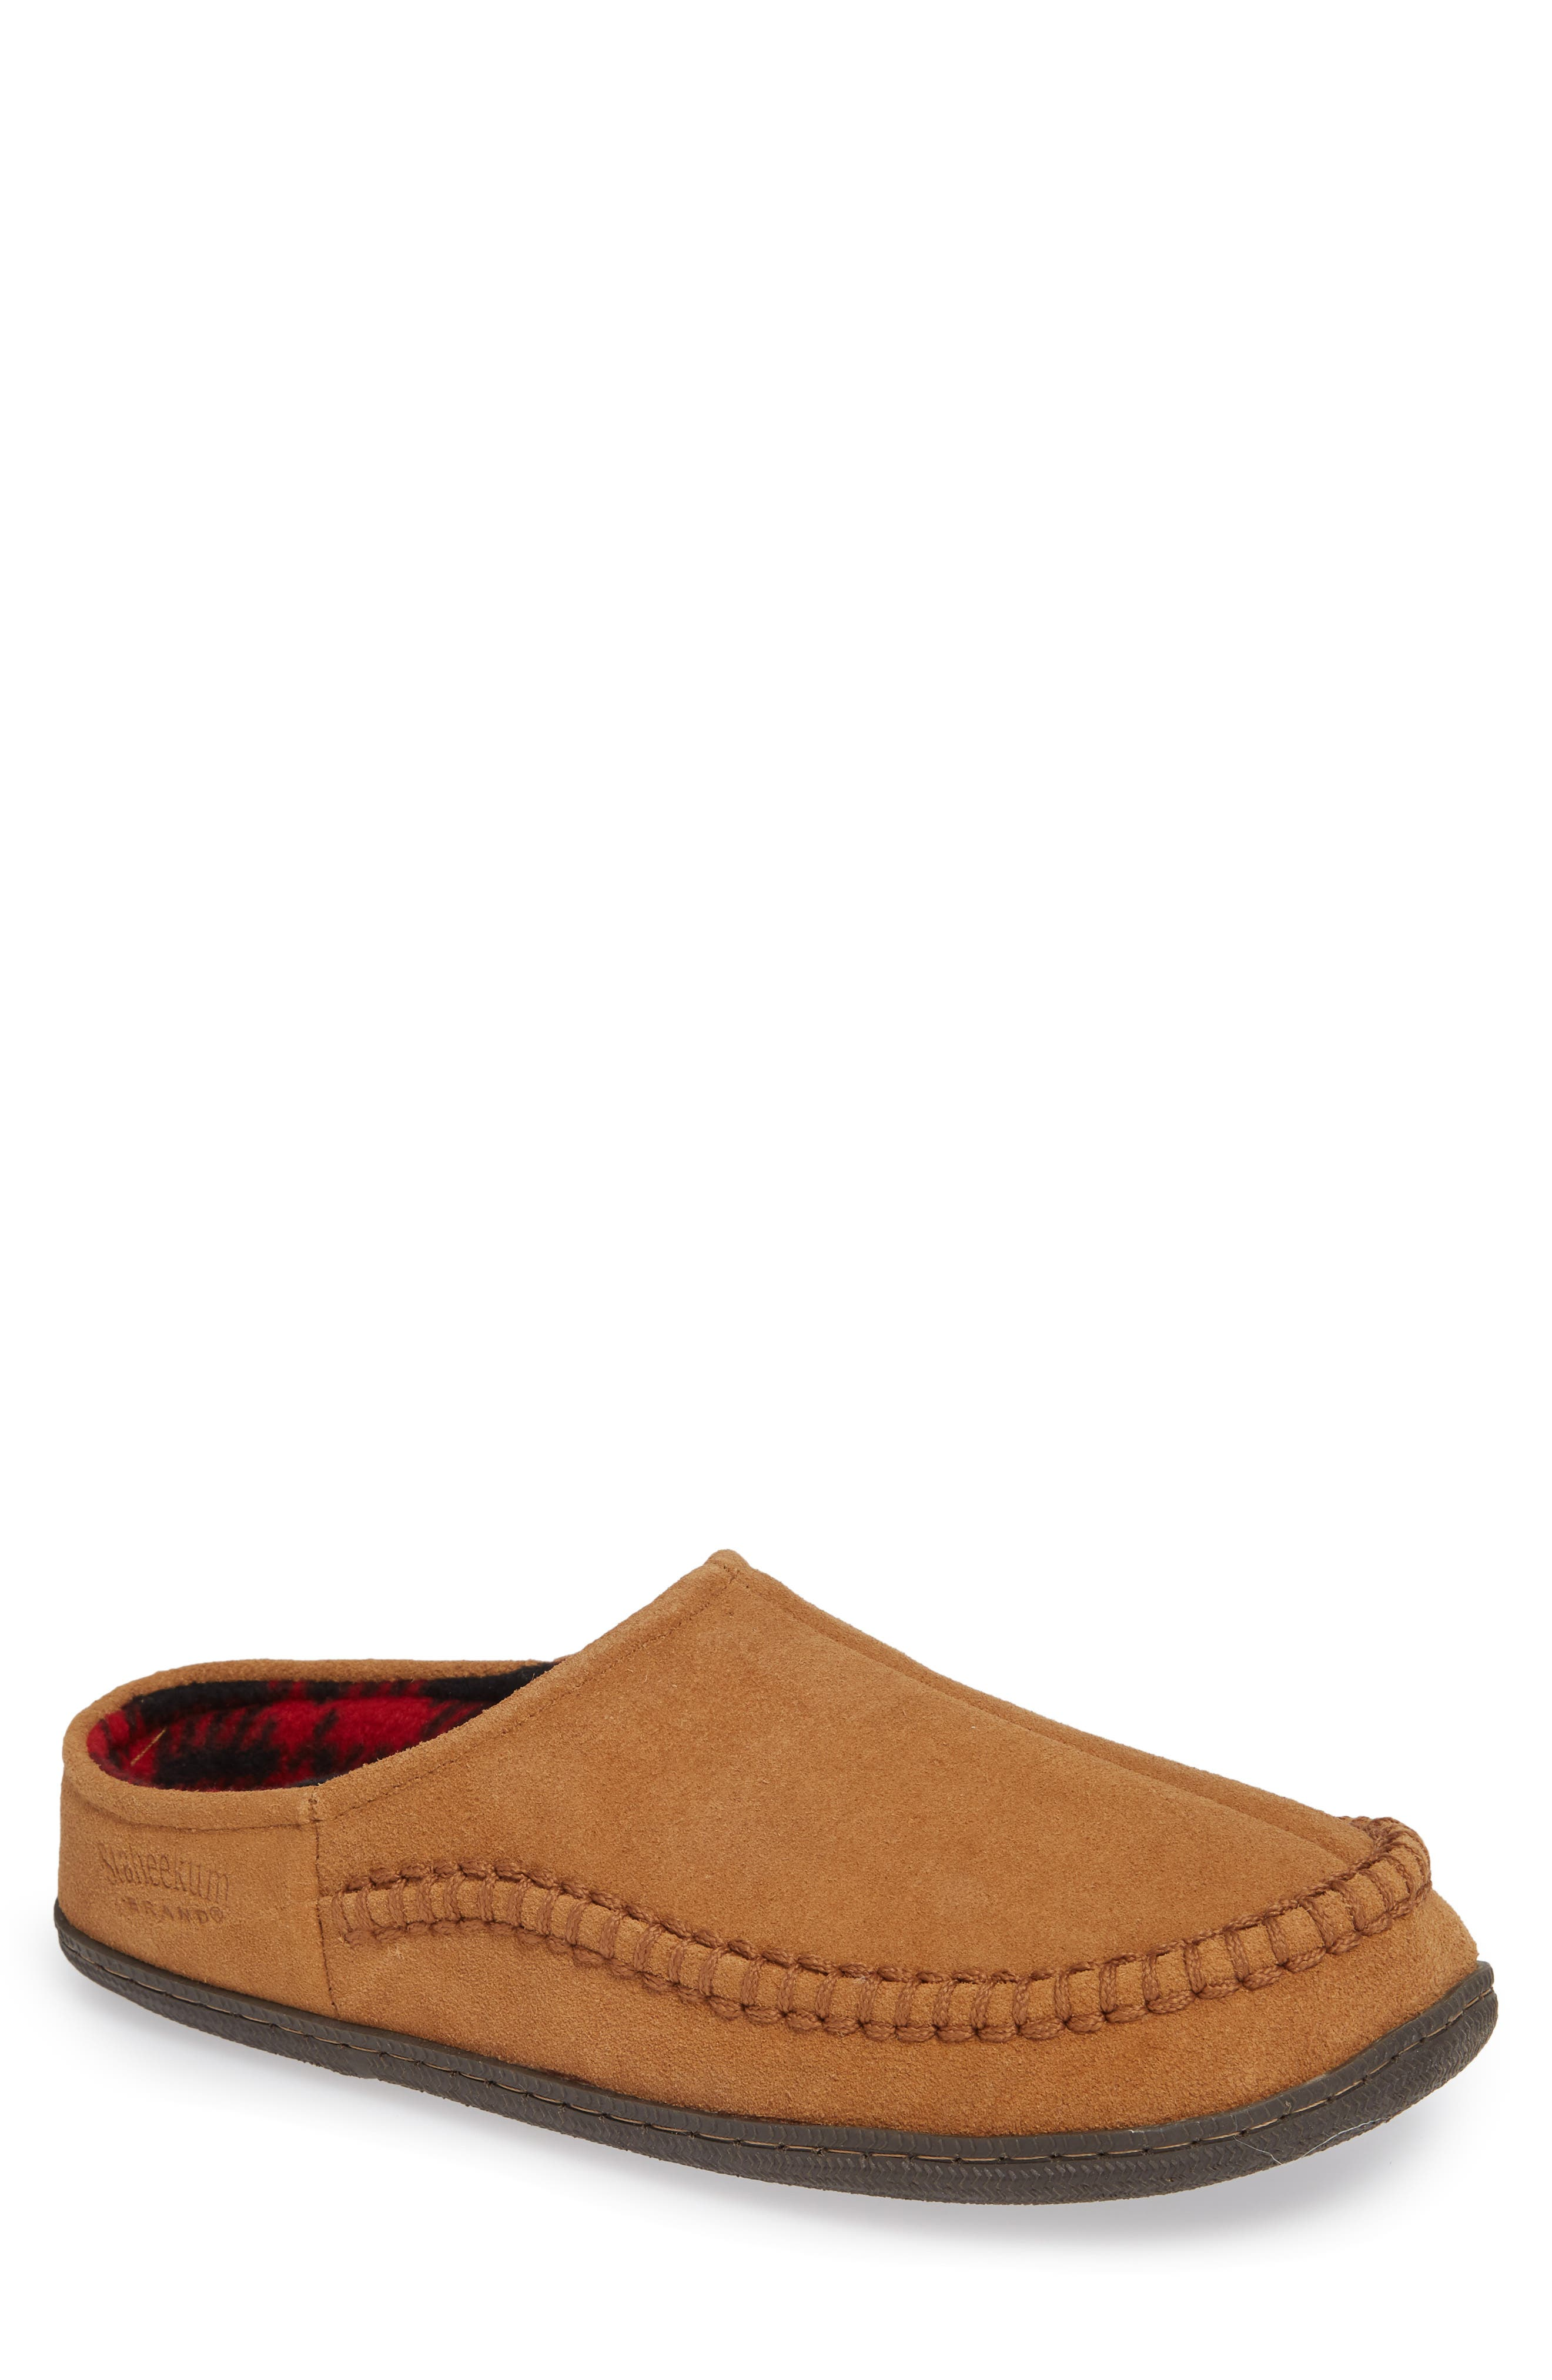 Cypress Flannel Lined Slipper,                         Main,                         color, 212